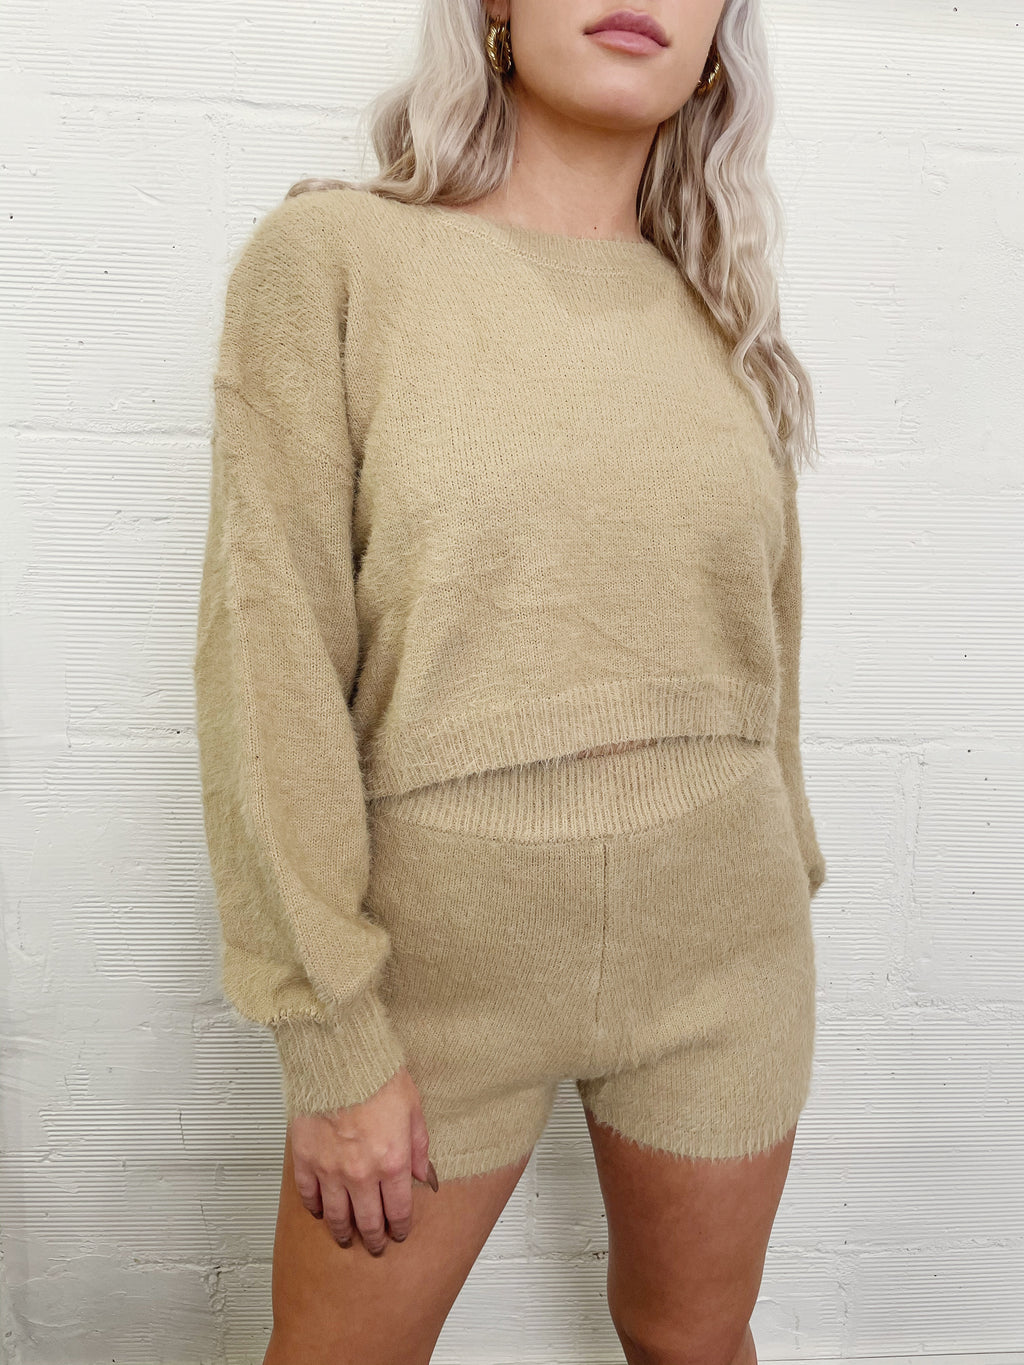 Buttercup Set Sweater